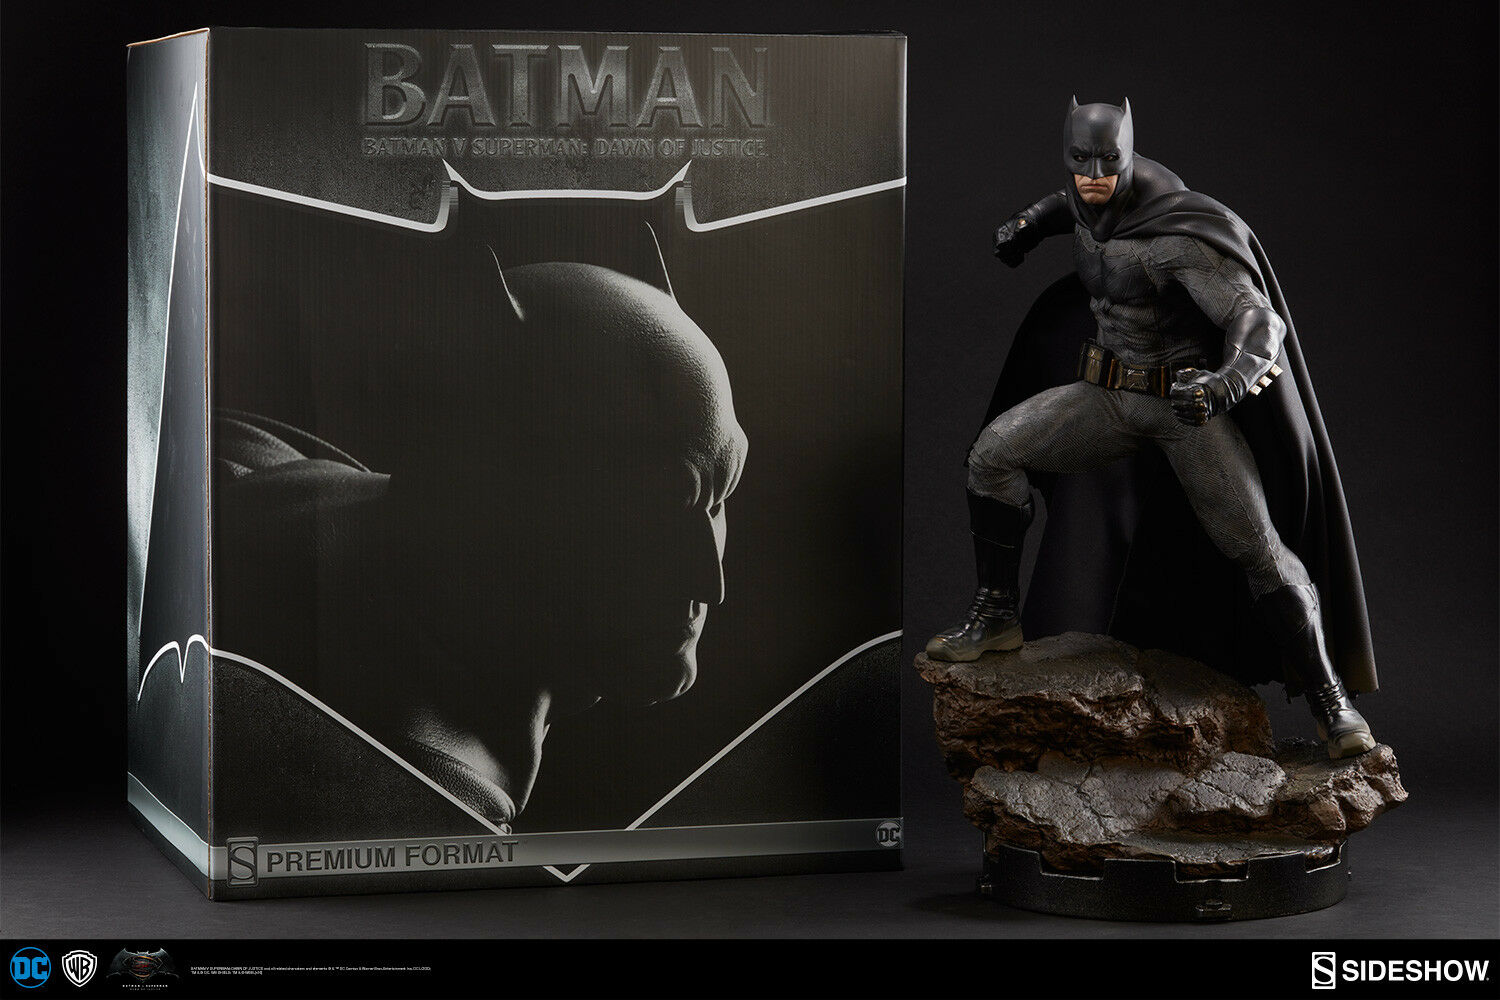 BATMAN V SUPERMAN  DAWN OF JUSTICE SIDESHOW BATMAN PREMIUM FORMAT